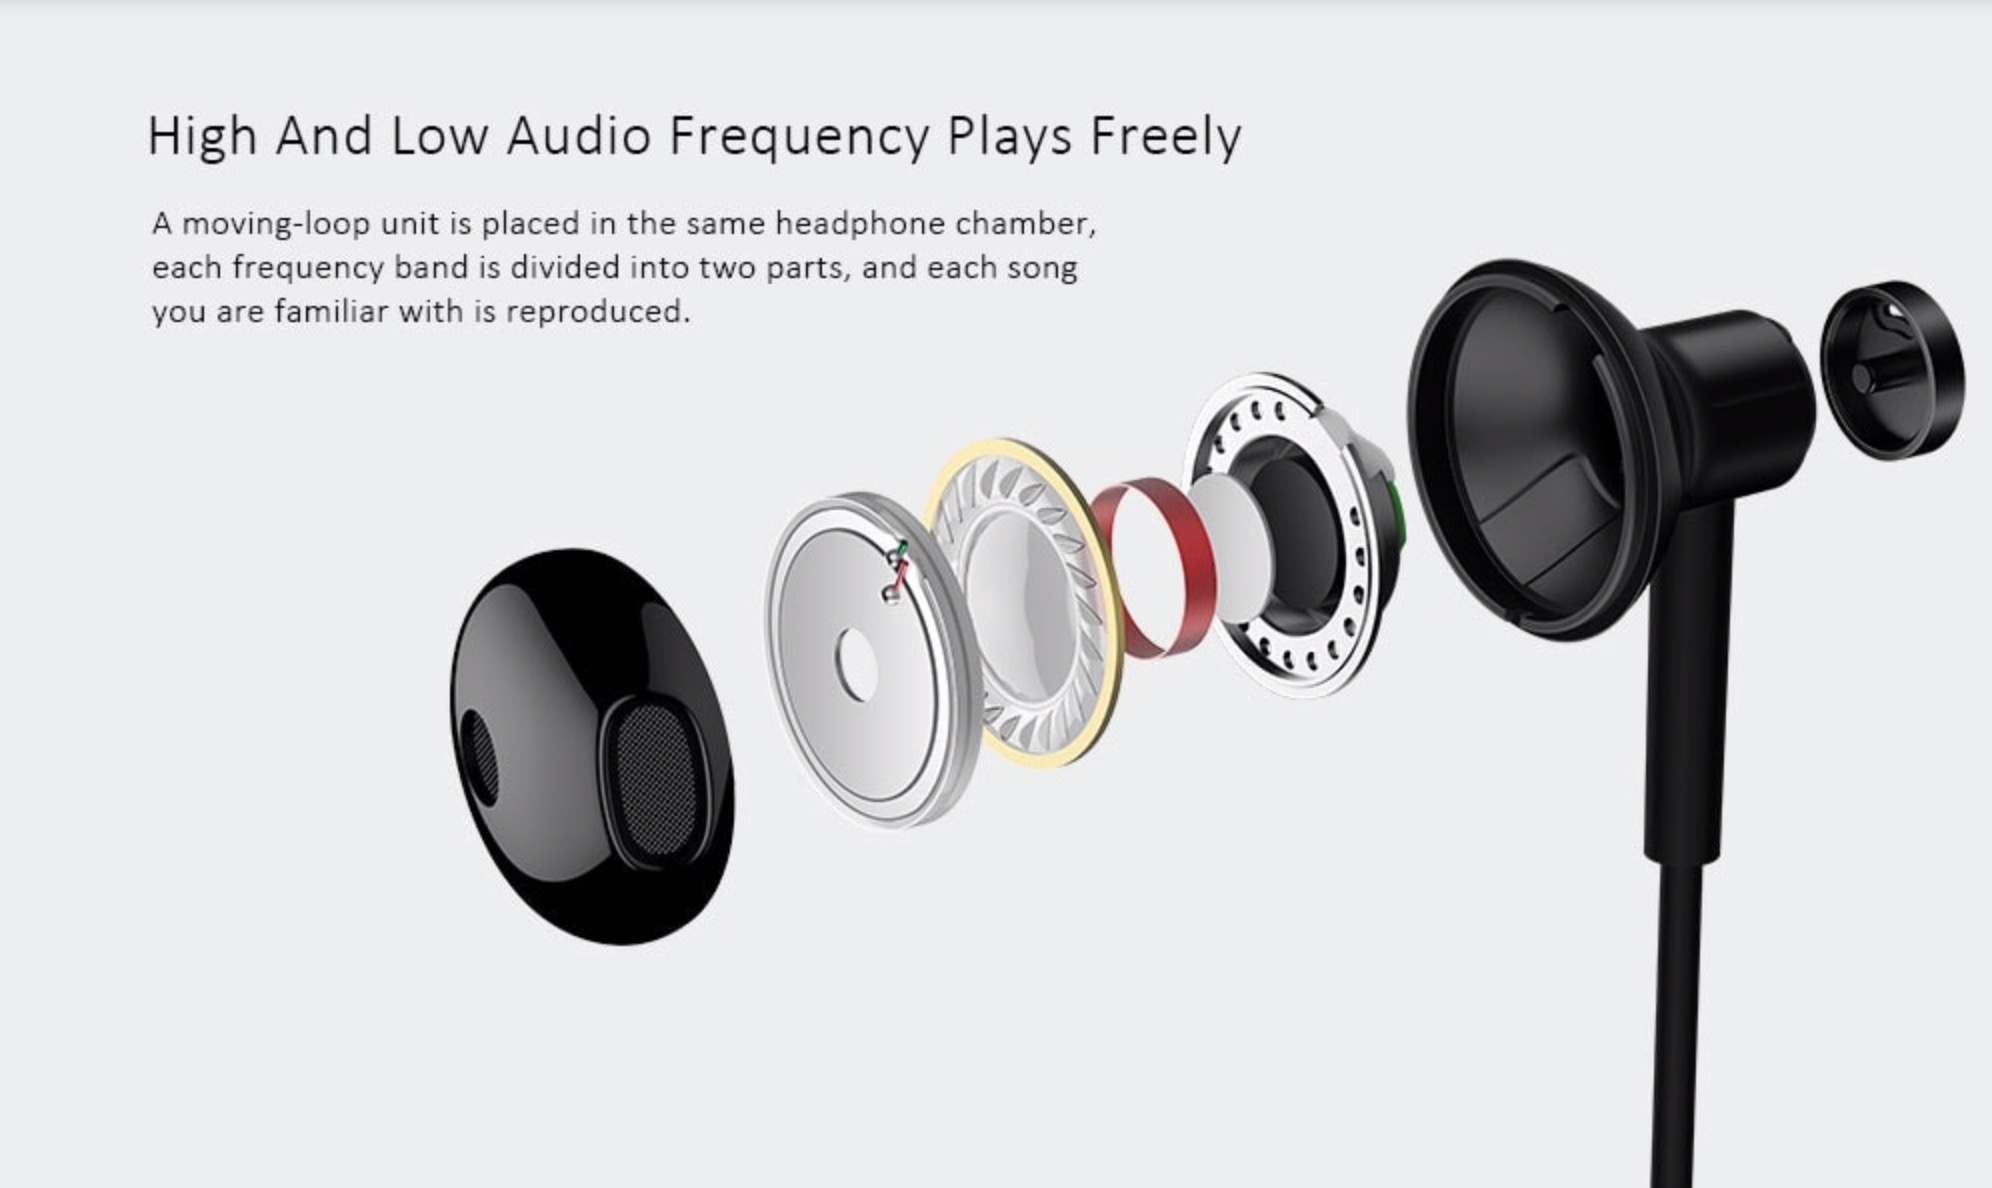 Mi Dual Driver Earphones (Type-C) High and Low Audio Frequency Plays Freely A moving-loop unit is placed in the same headphone chamber, each frequency band is divided into two parts, and each song you are familiar with is reproduced